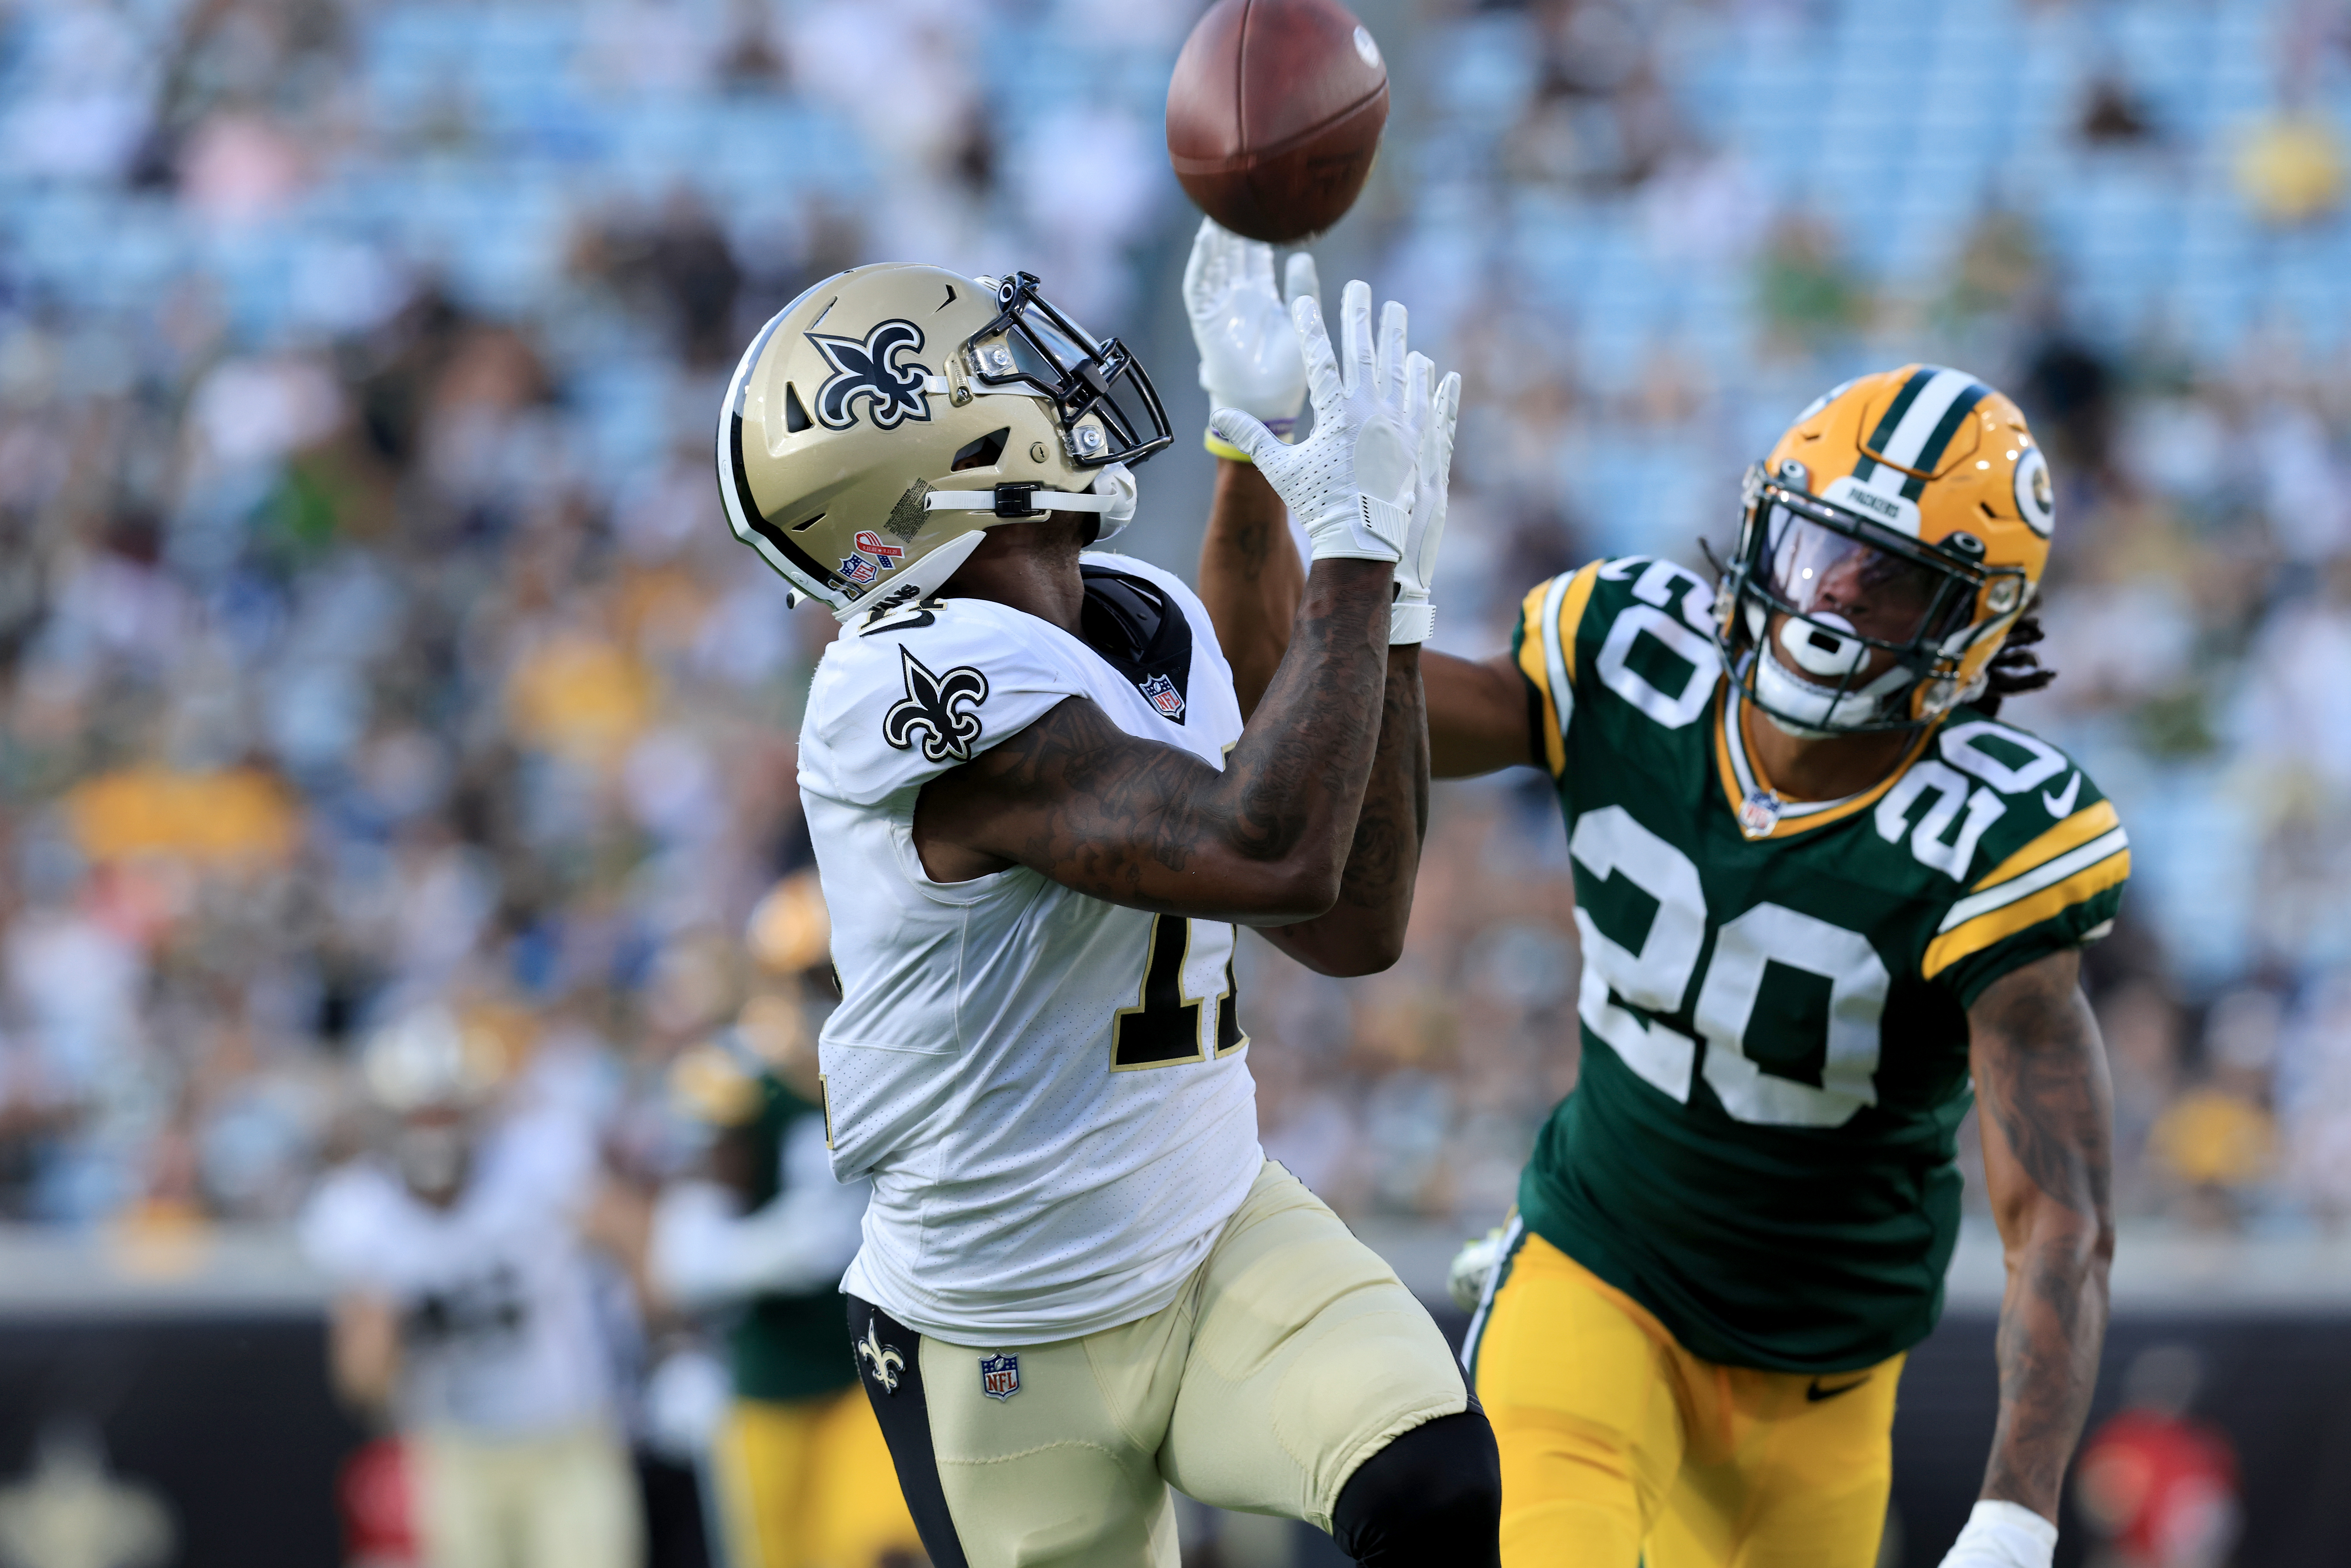 Deonte Harris #11 of the New Orleans Saints makes a reception for a touchdown against Kevin King #20 of the Green Bay Packers during the game at TIAA Bank Field on September 12, 2021 in Jacksonville, Florida.